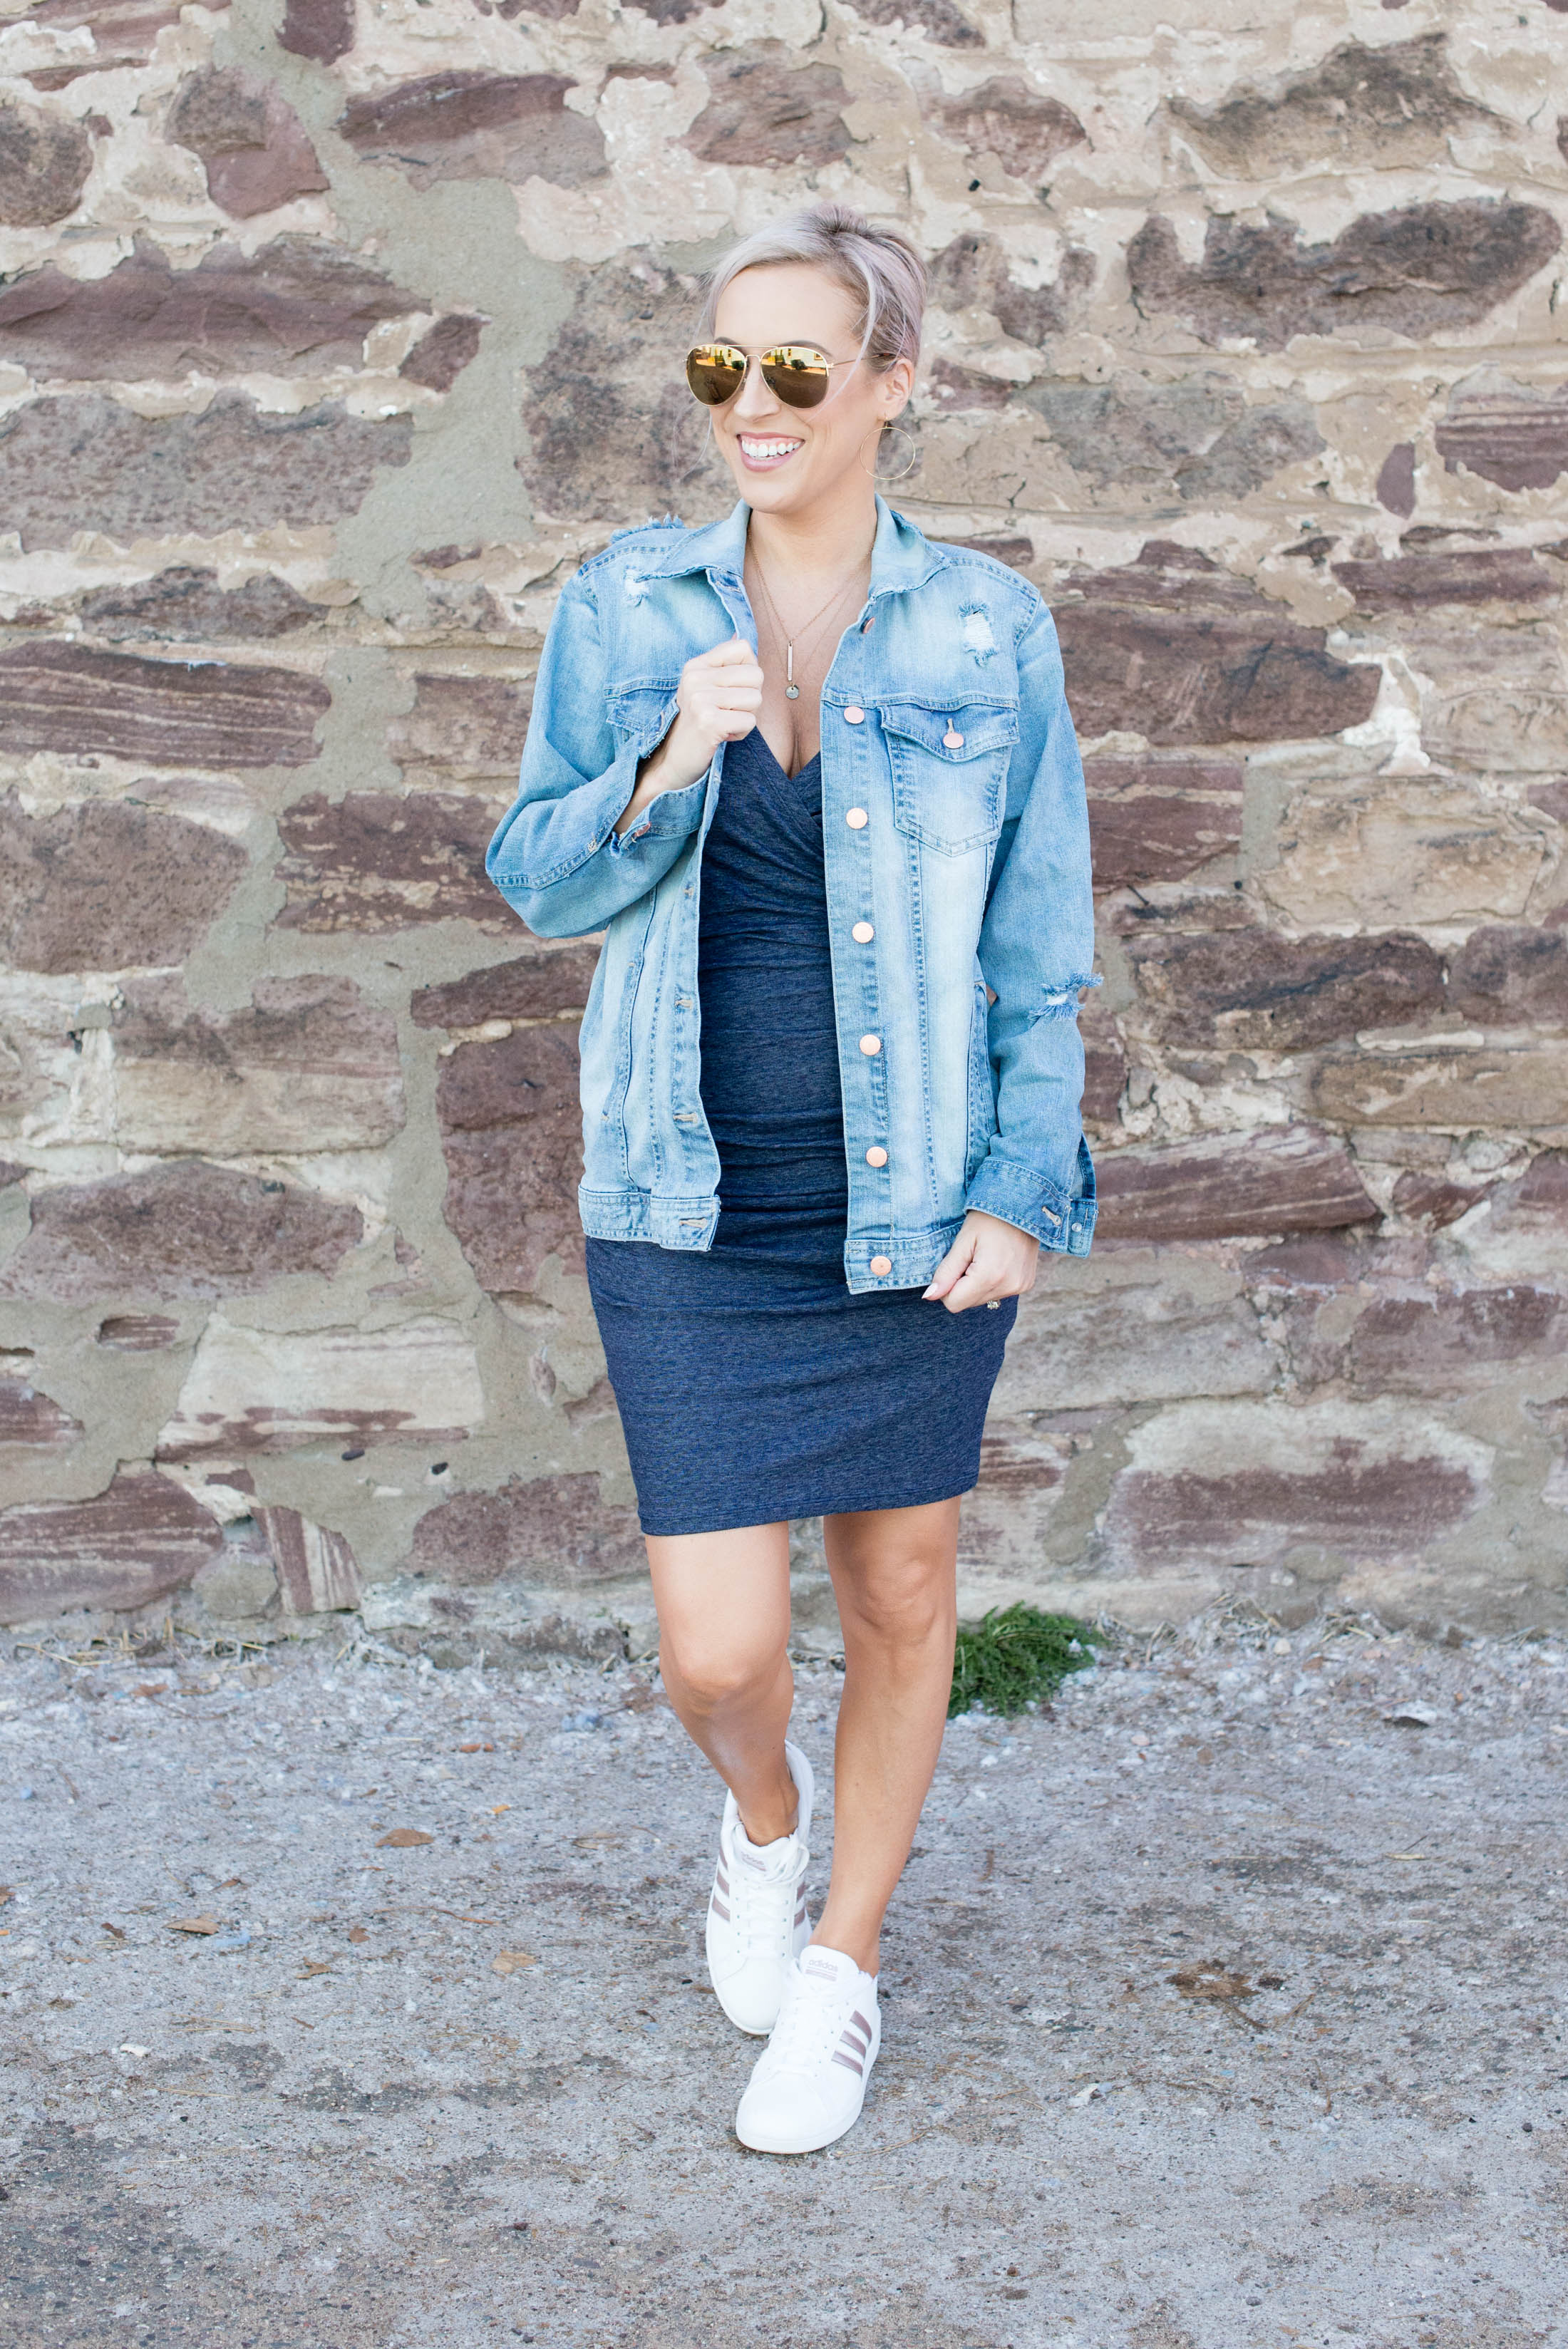 Comfy t-shirt dress + oversized denim jacket + cute white sneaks = easy summer outfit formula done. Check out this effortless daily style.